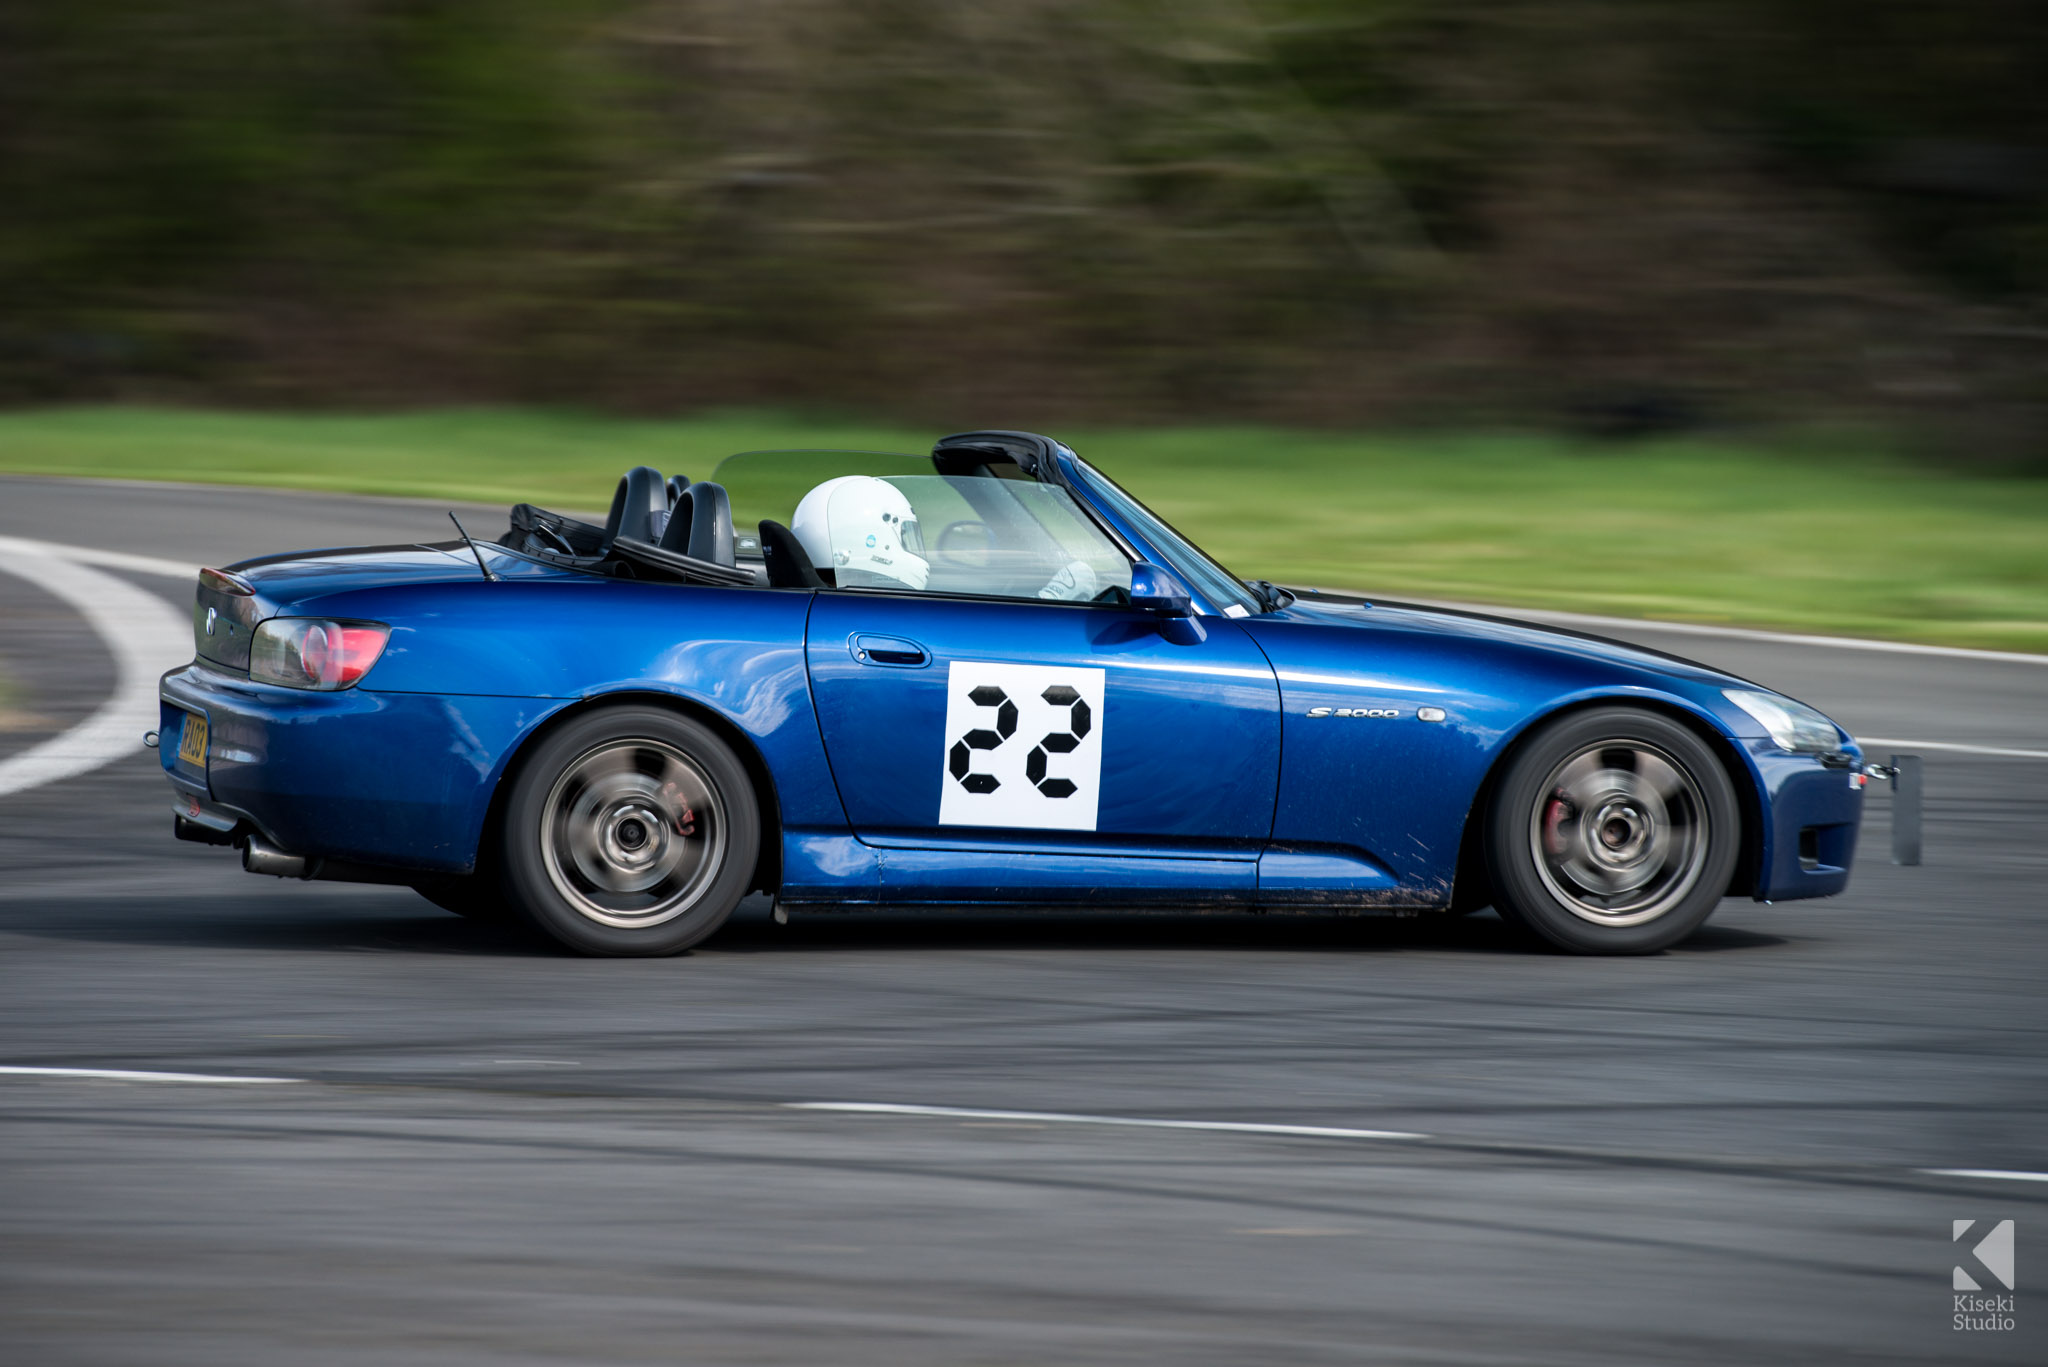 Honda S2000 at Curborough Sprint Course